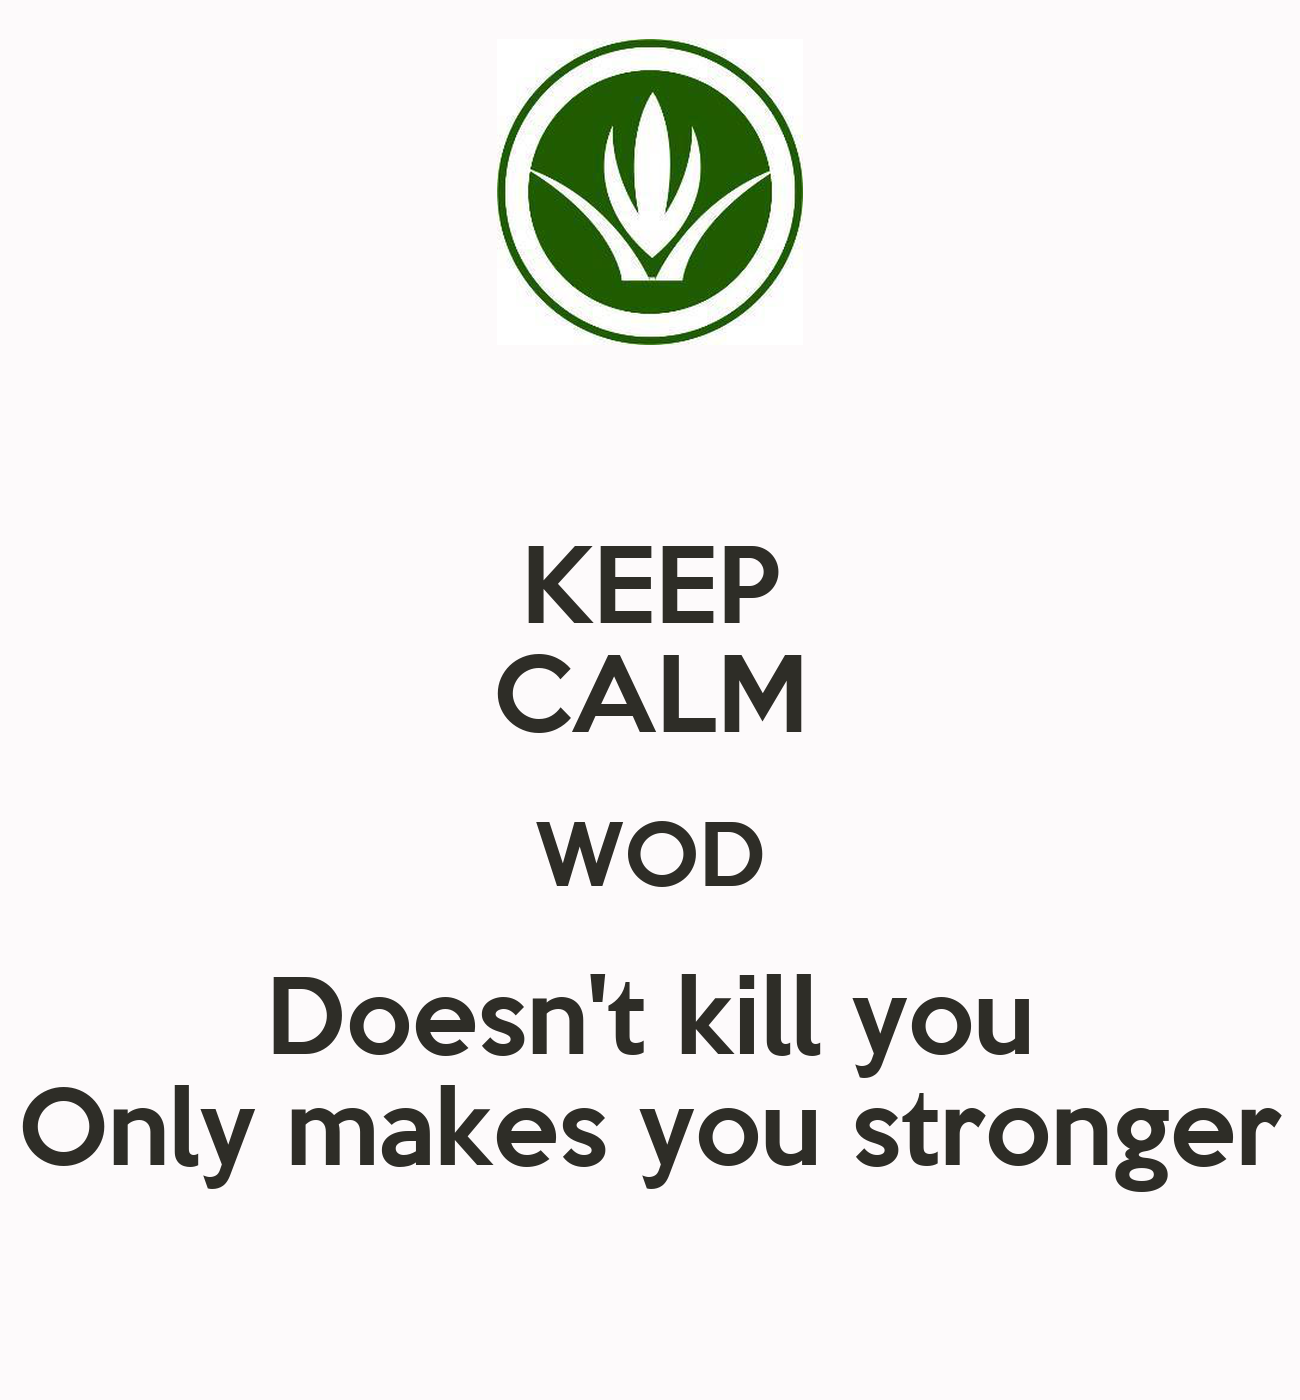 KEEP CALM WOD Doesn't Kill You Only Makes You Stronger